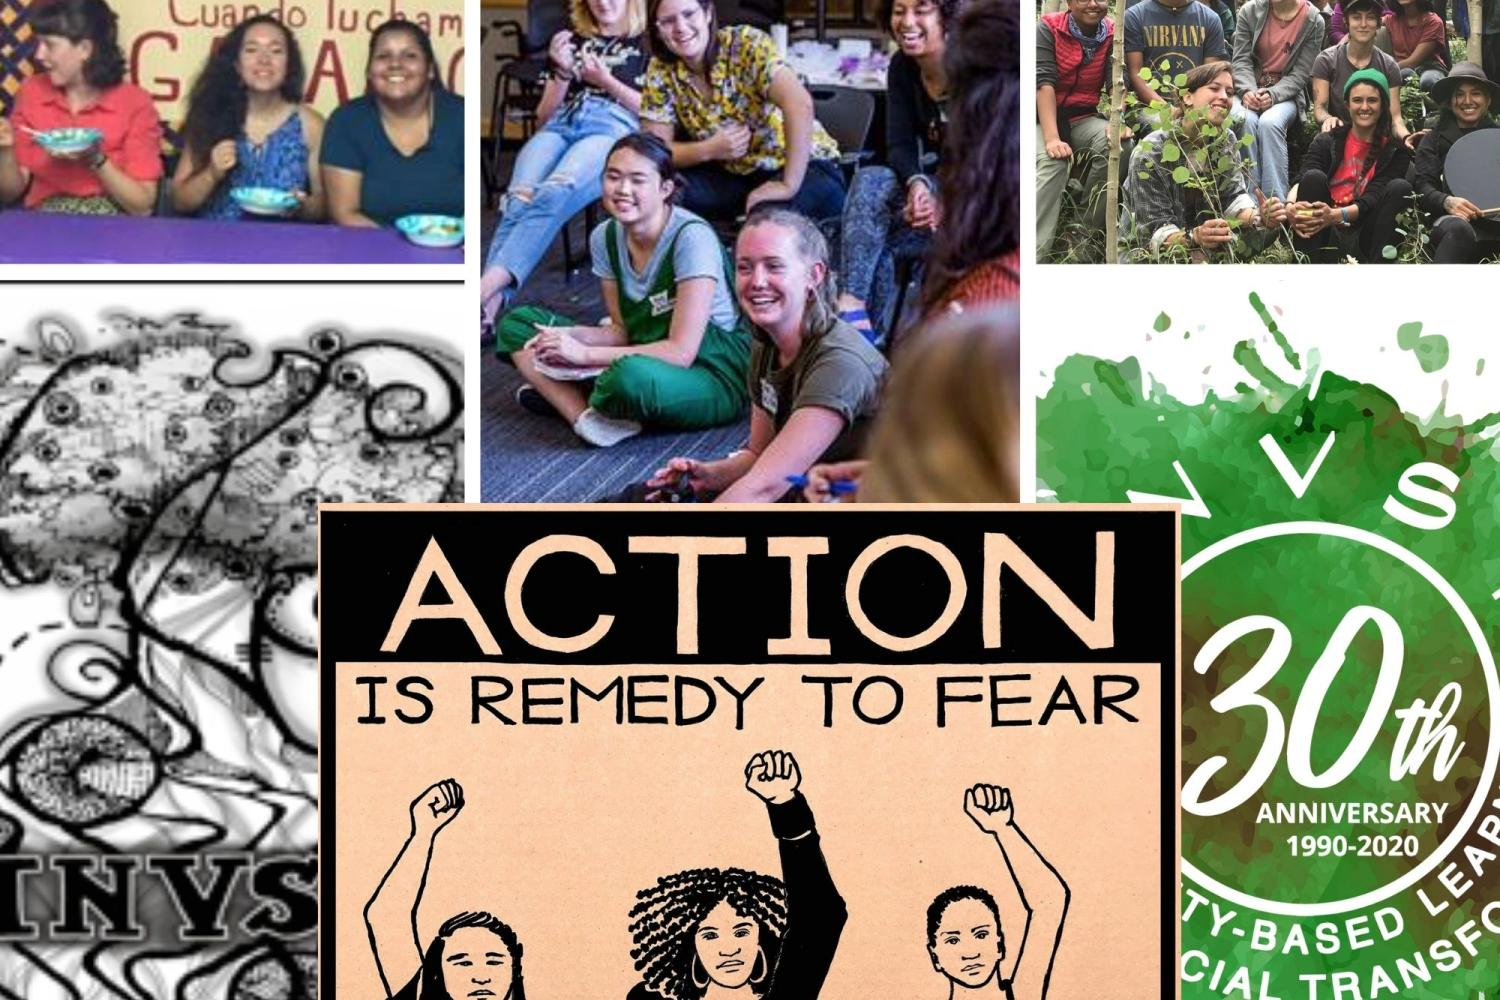 INVST Anniversary Collage - Action is remedy to fear